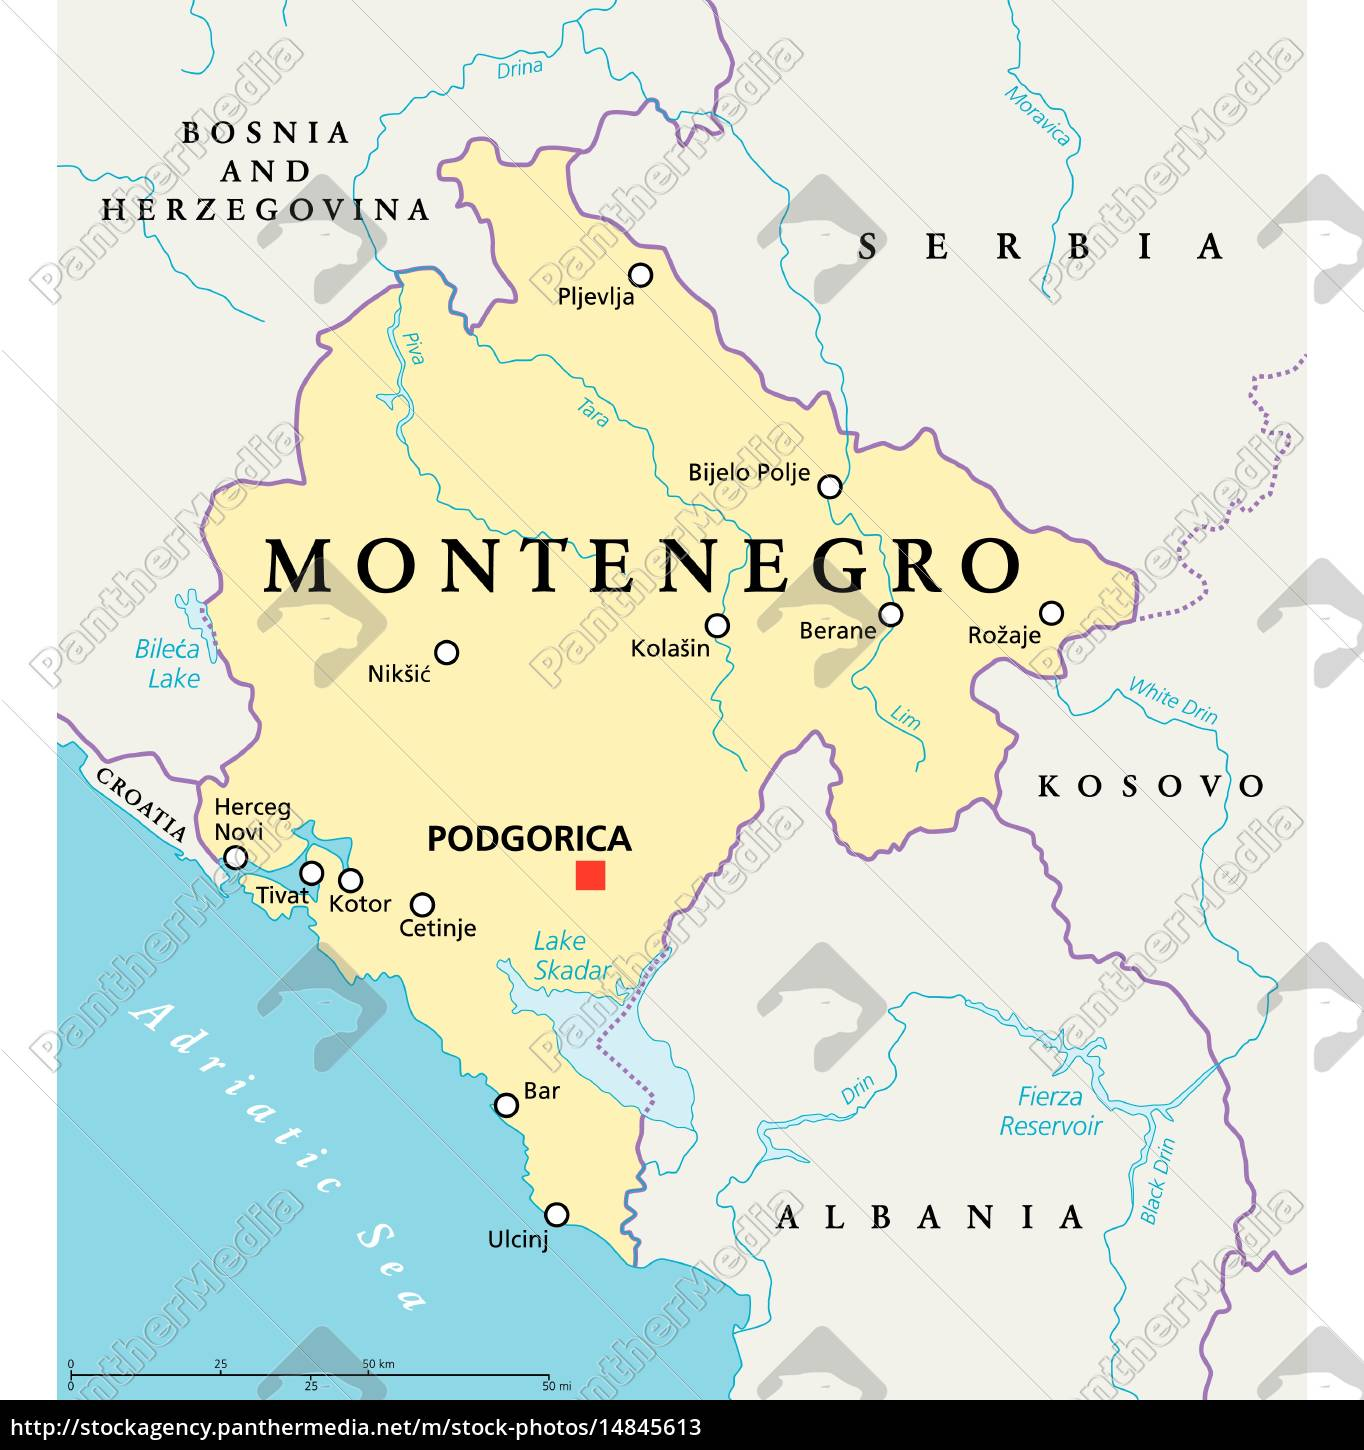 royalty free vector 14845613 - Montenegro Political Map